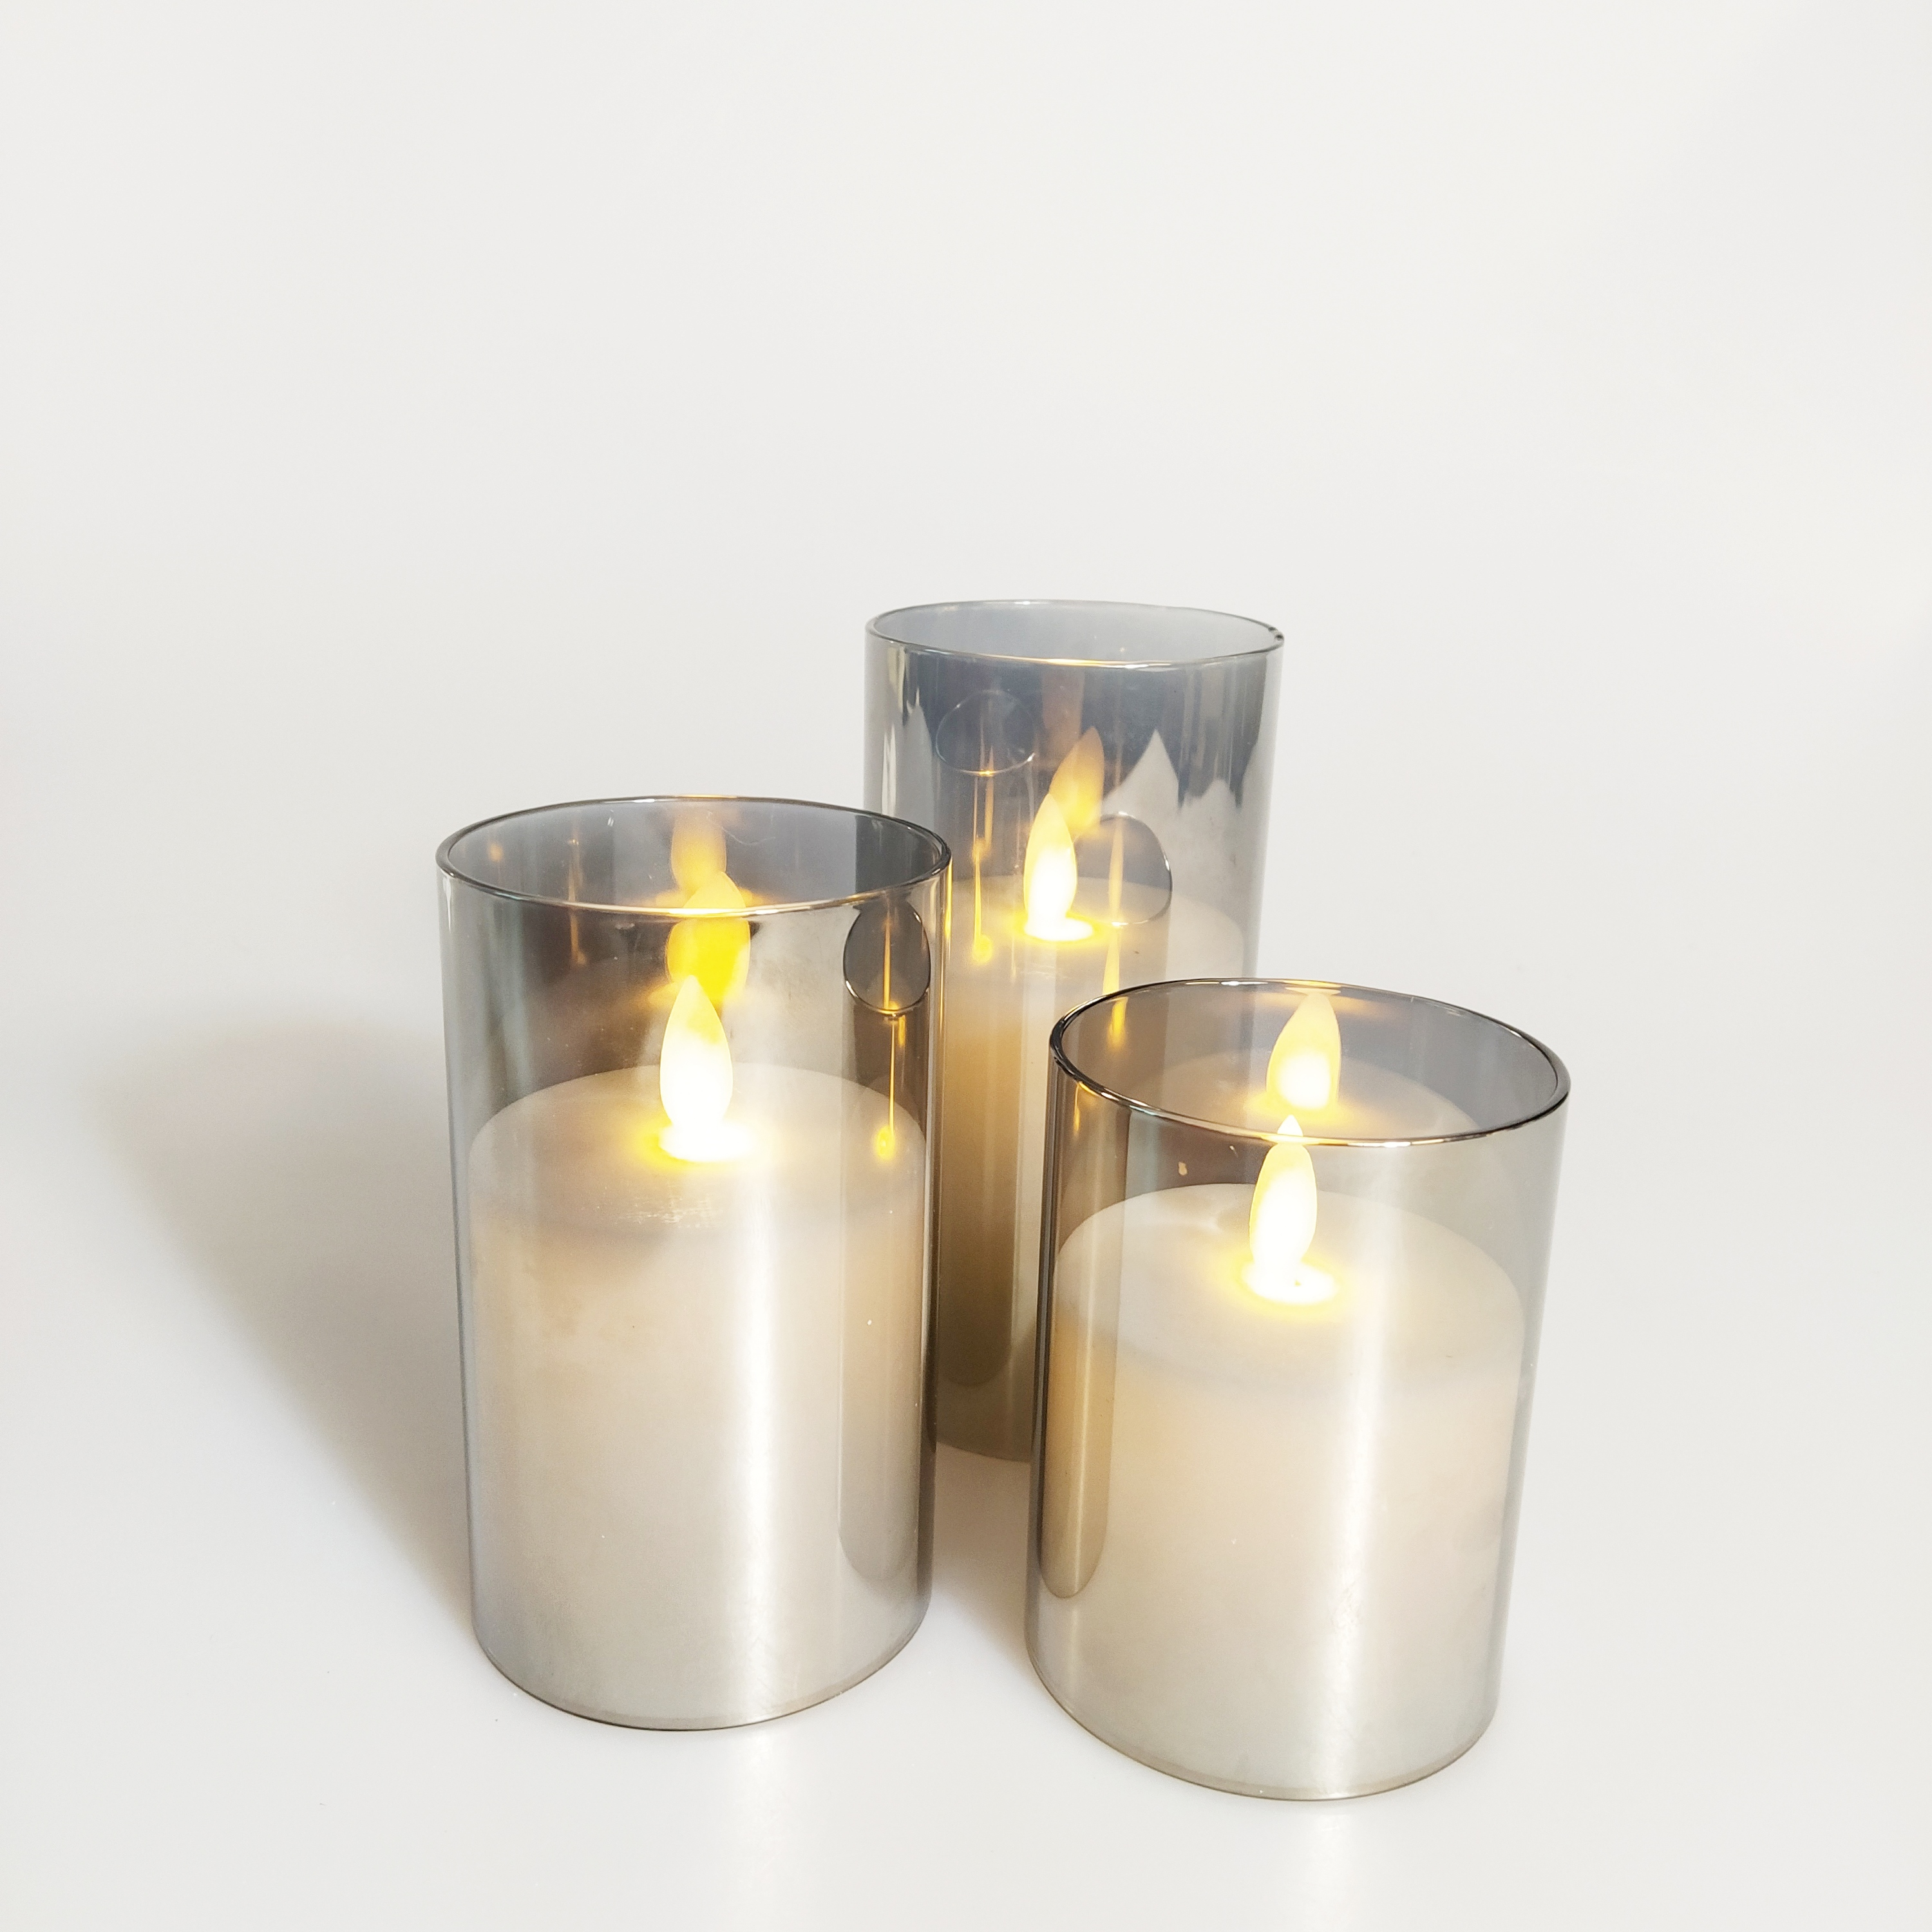 Newish hot selling 7.5*10CM  flame tube flicking function battery operated home decoration wax led candle glass jar